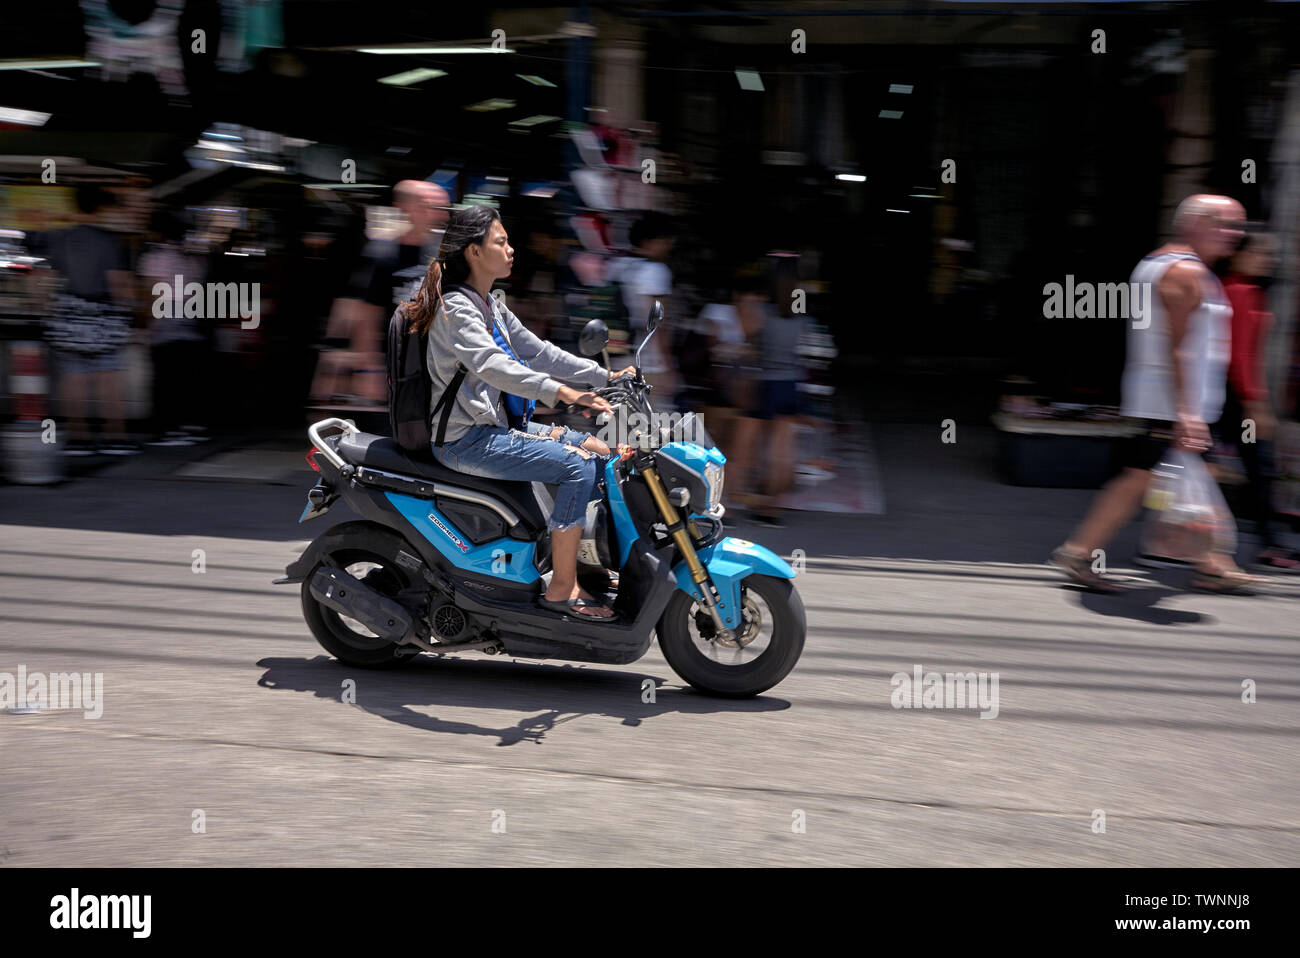 Motorcycle speeding. Blur and motion - Stock Image